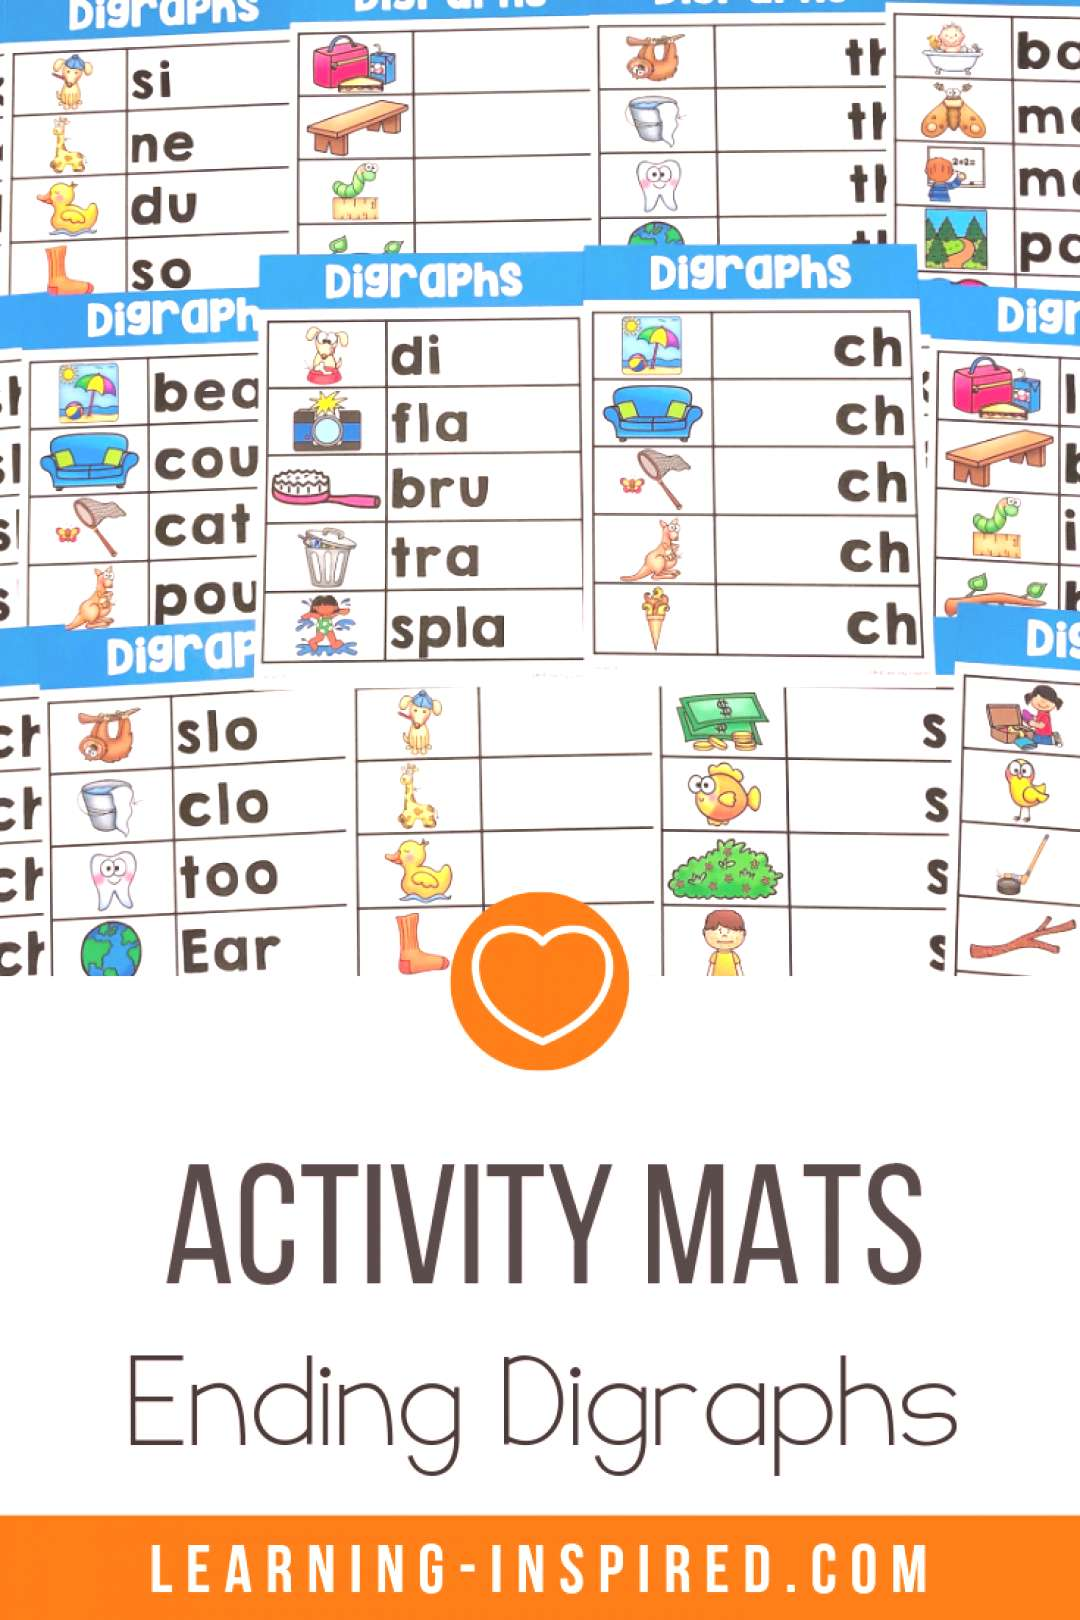 Ending Digraphs Word Work Activities Looking for quick, easy, and engaging literacy activities? The